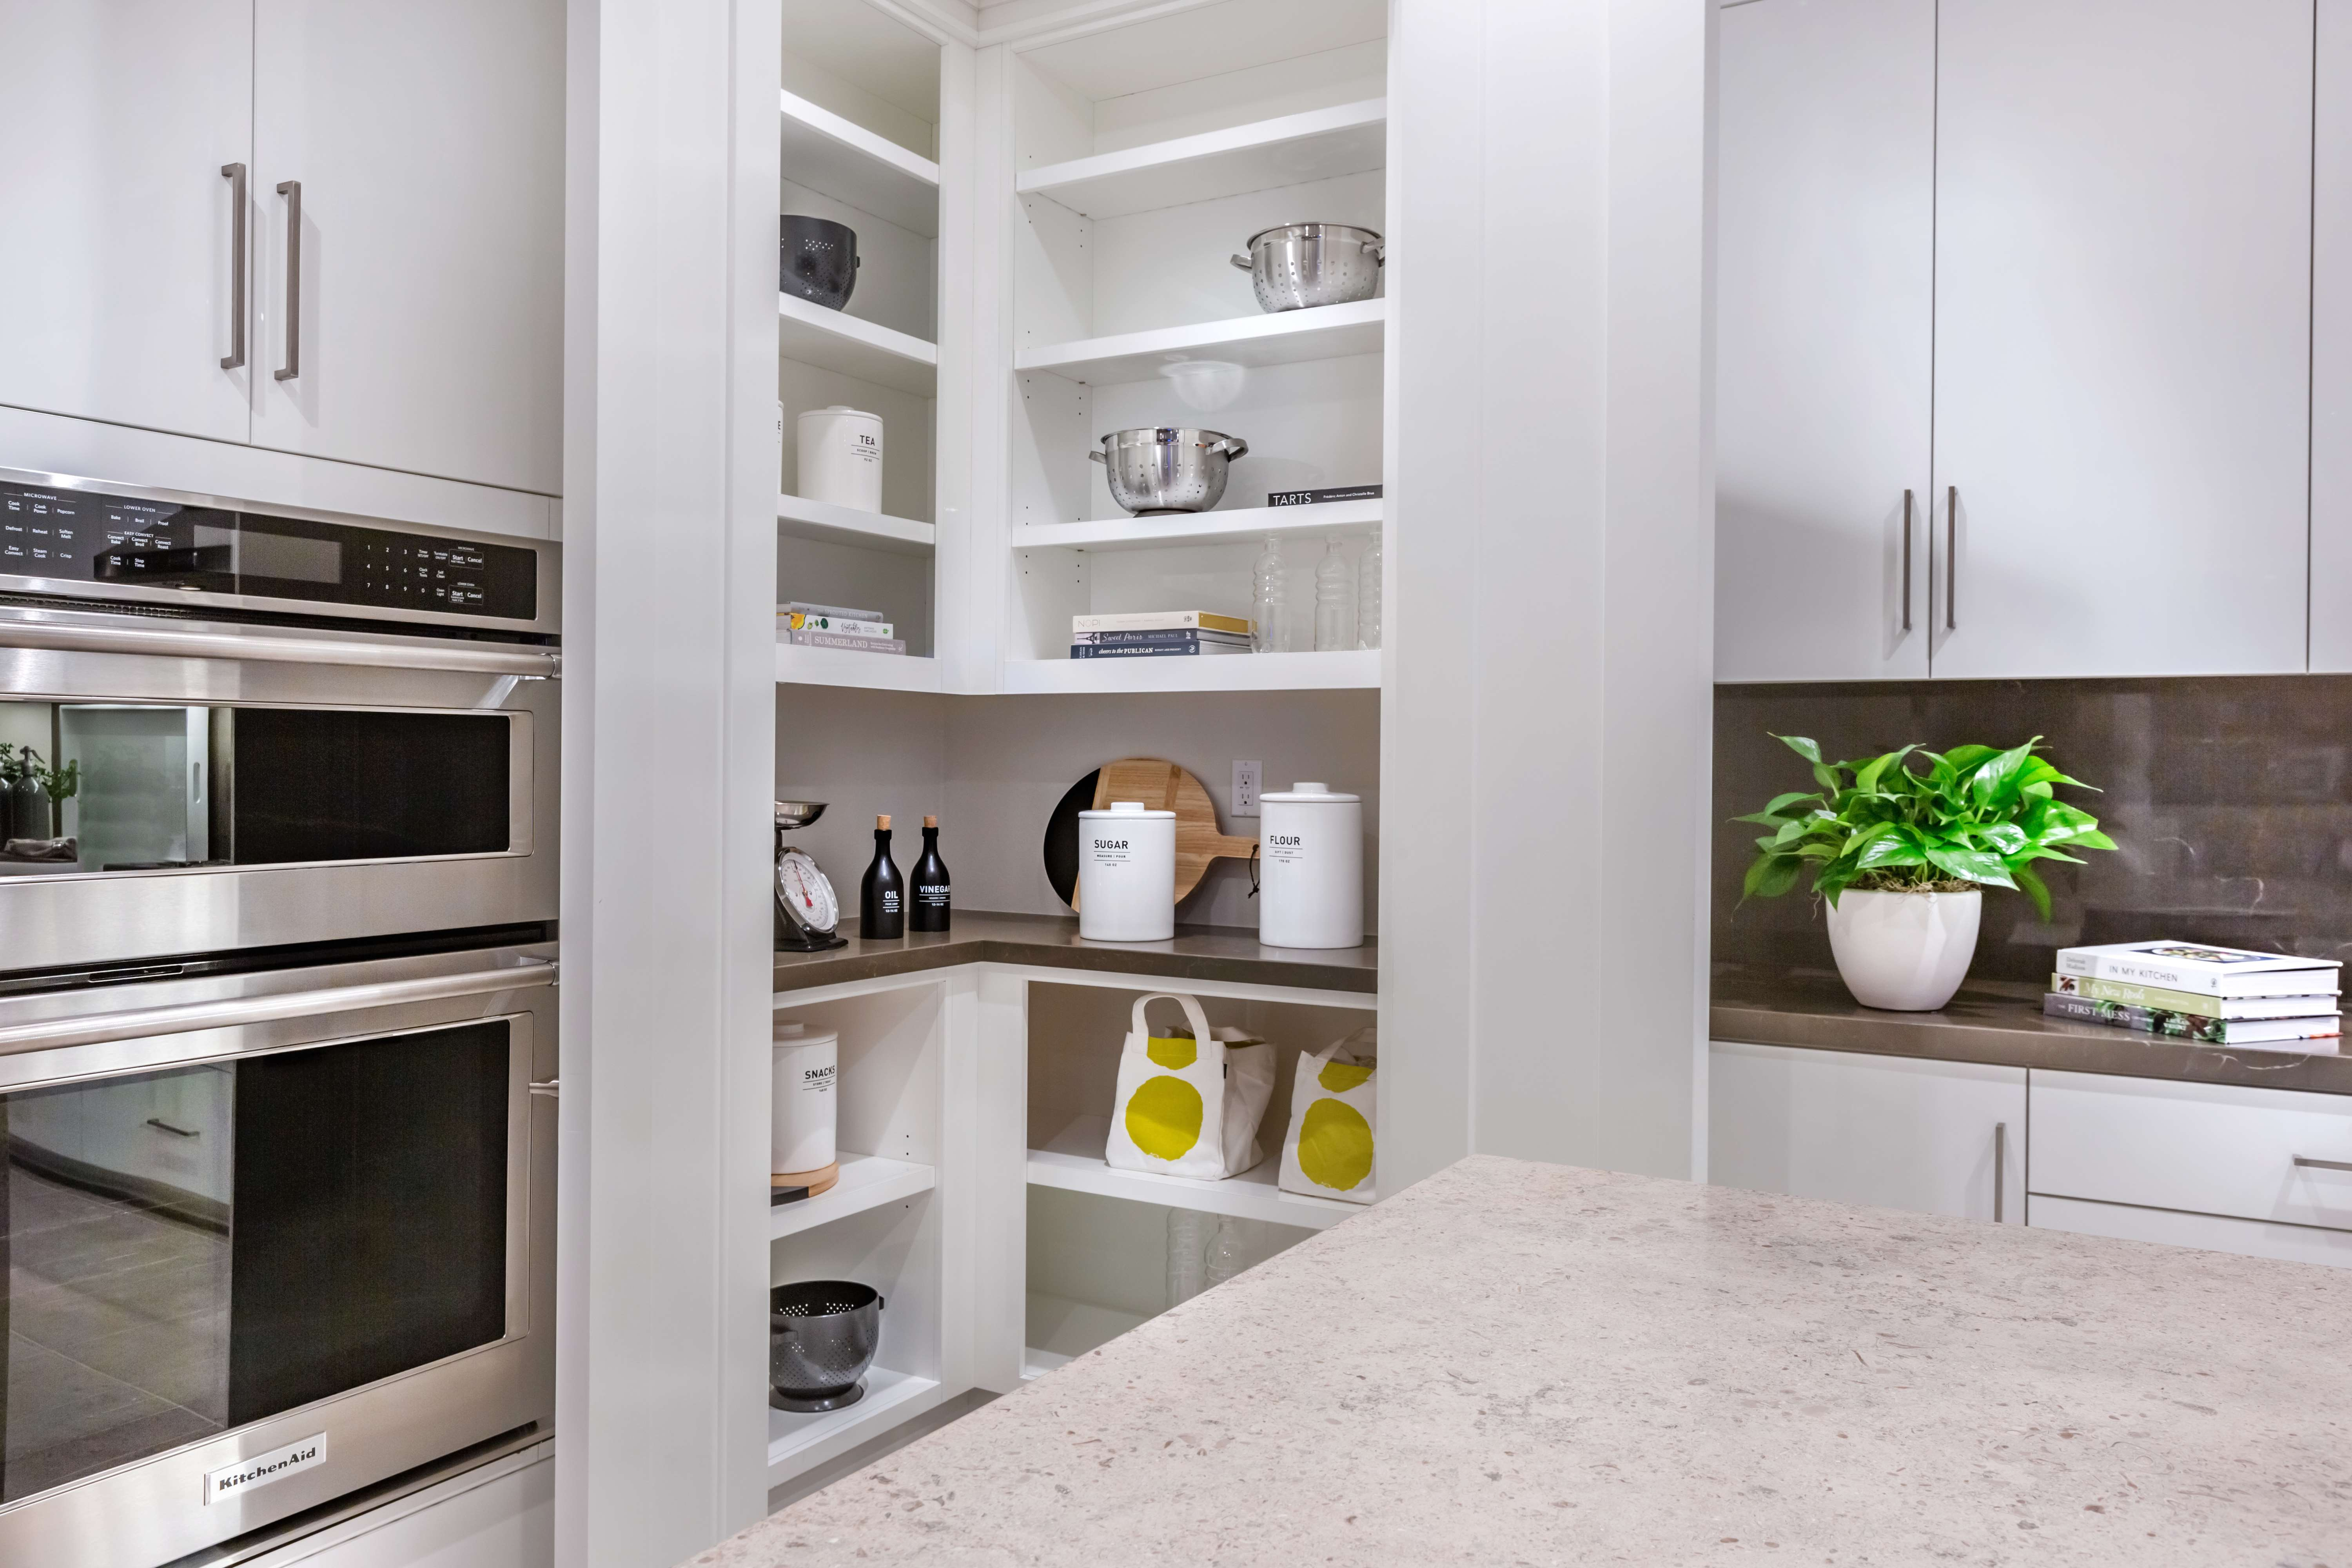 Pantry at Como Residence 1 in Irvine